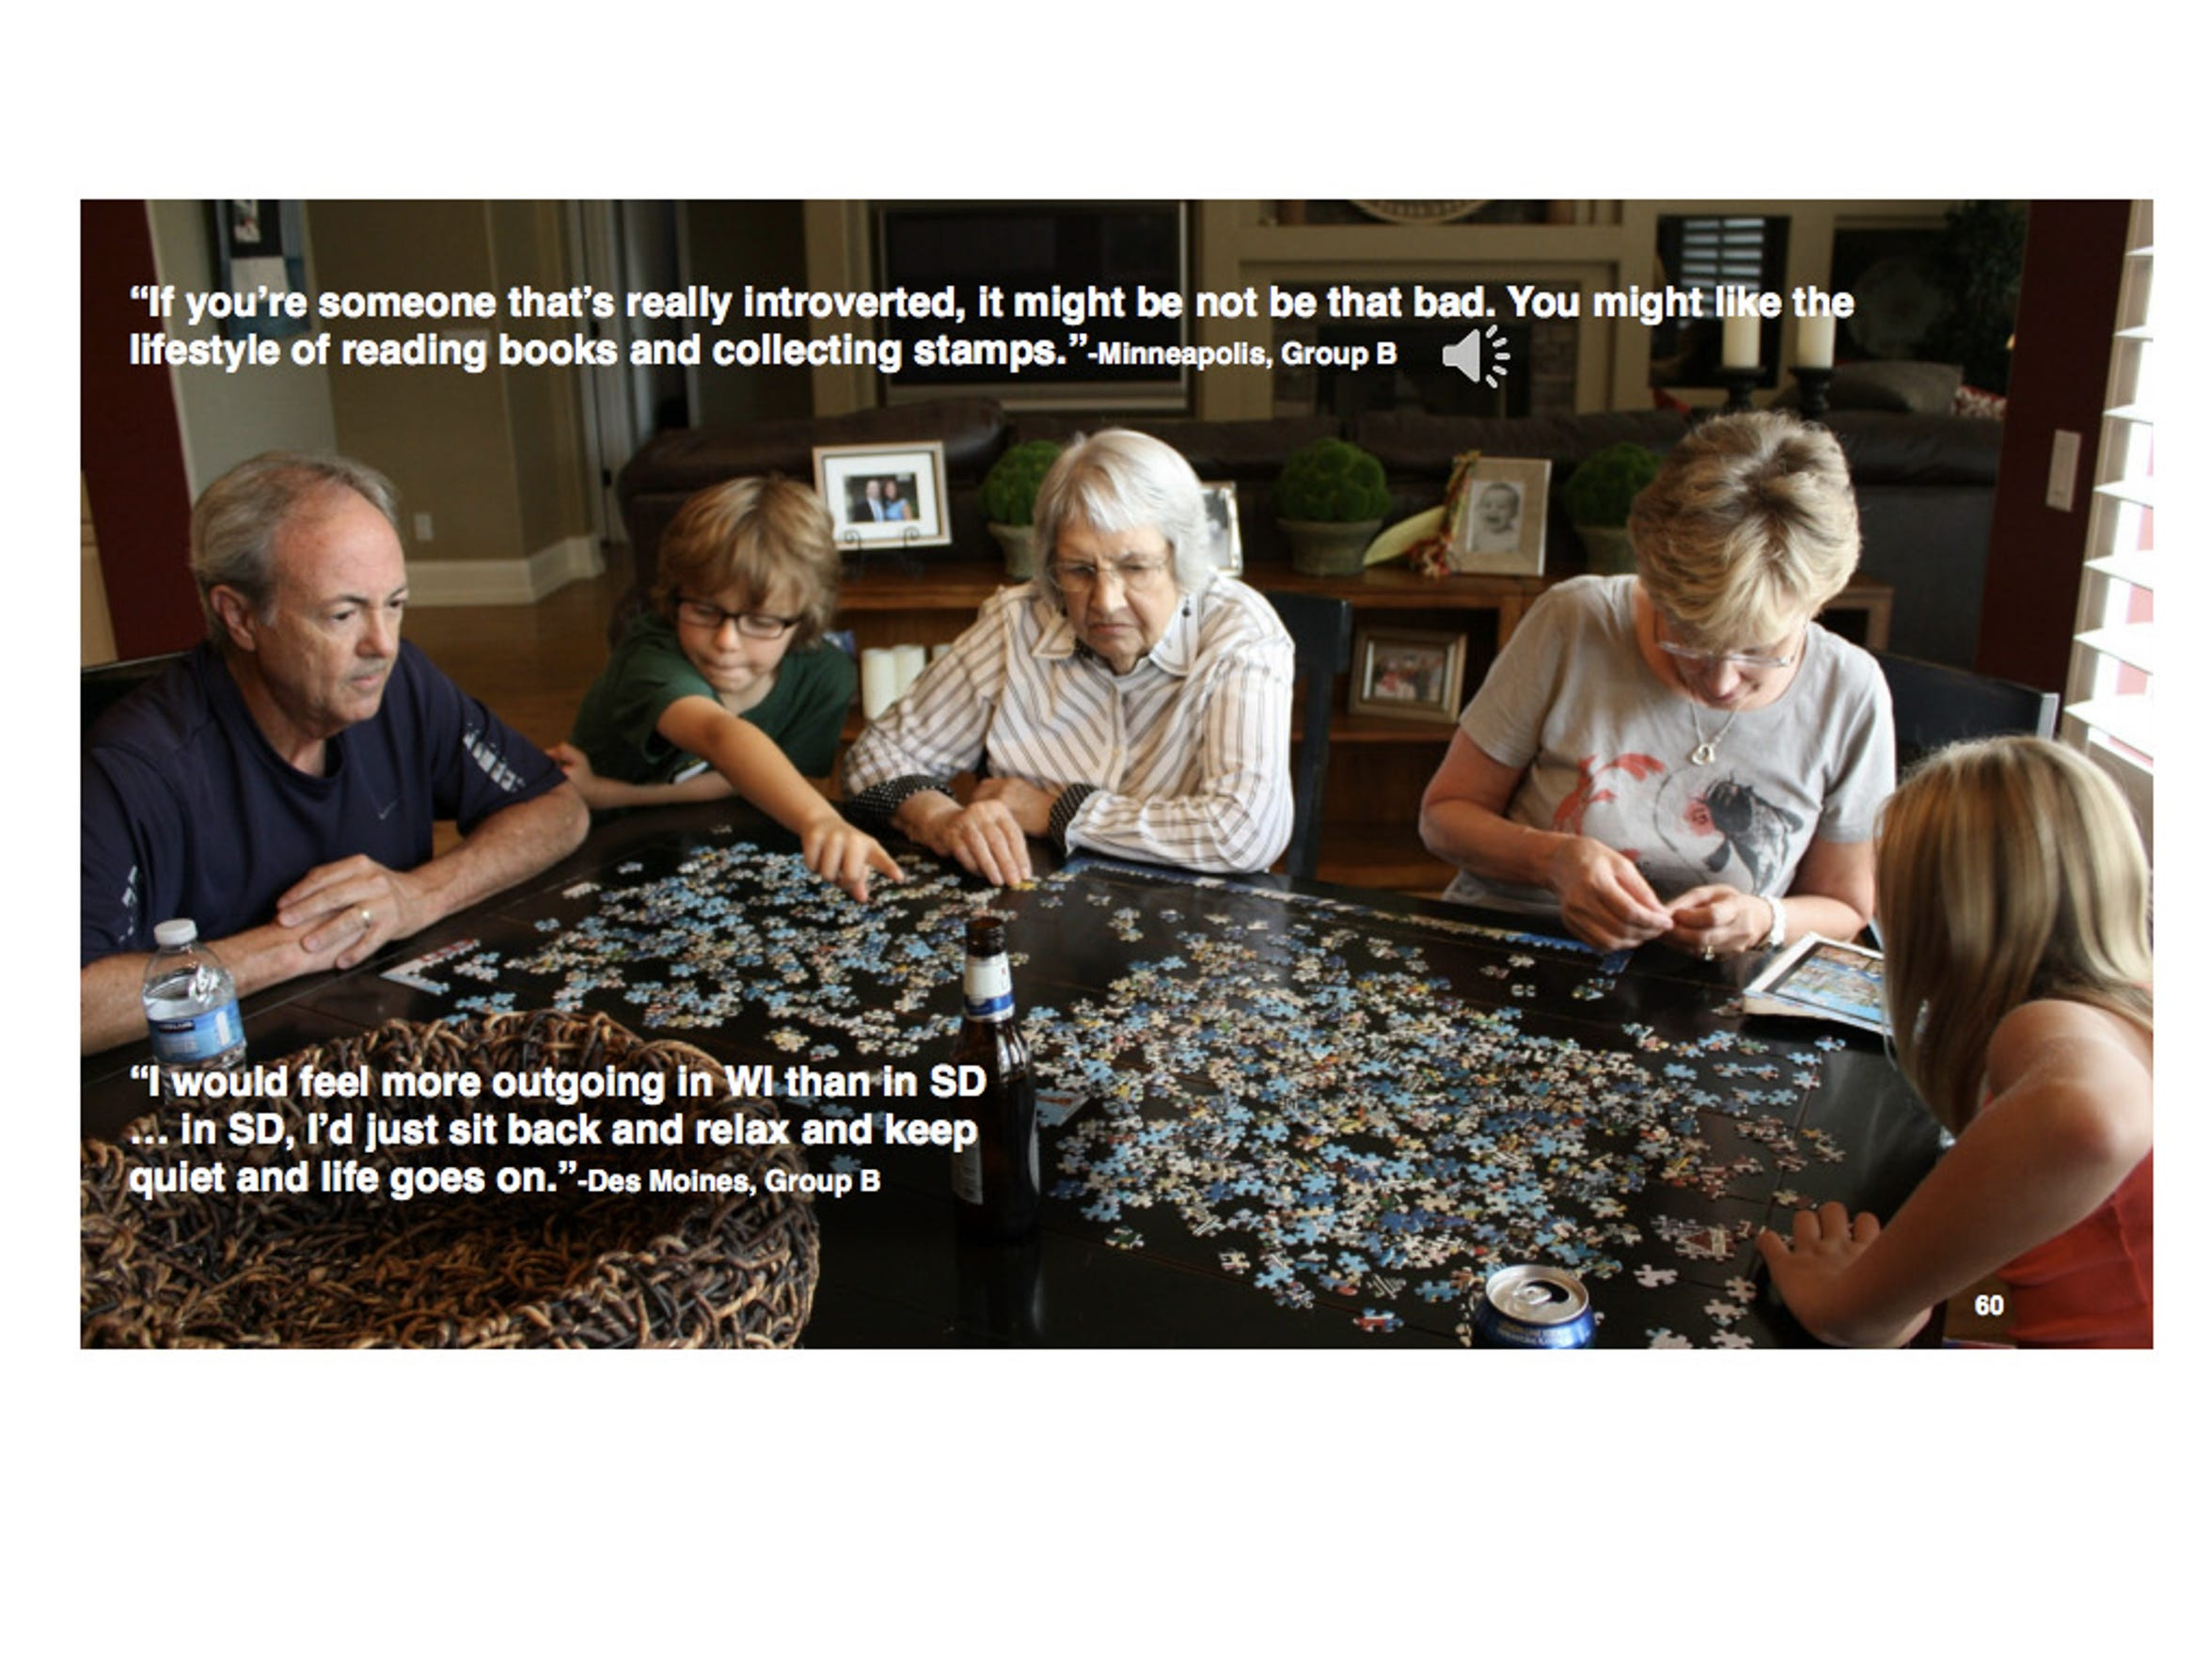 What is there to do in South Dakota? Some in focus groups think many spend their nights doing puzzles.